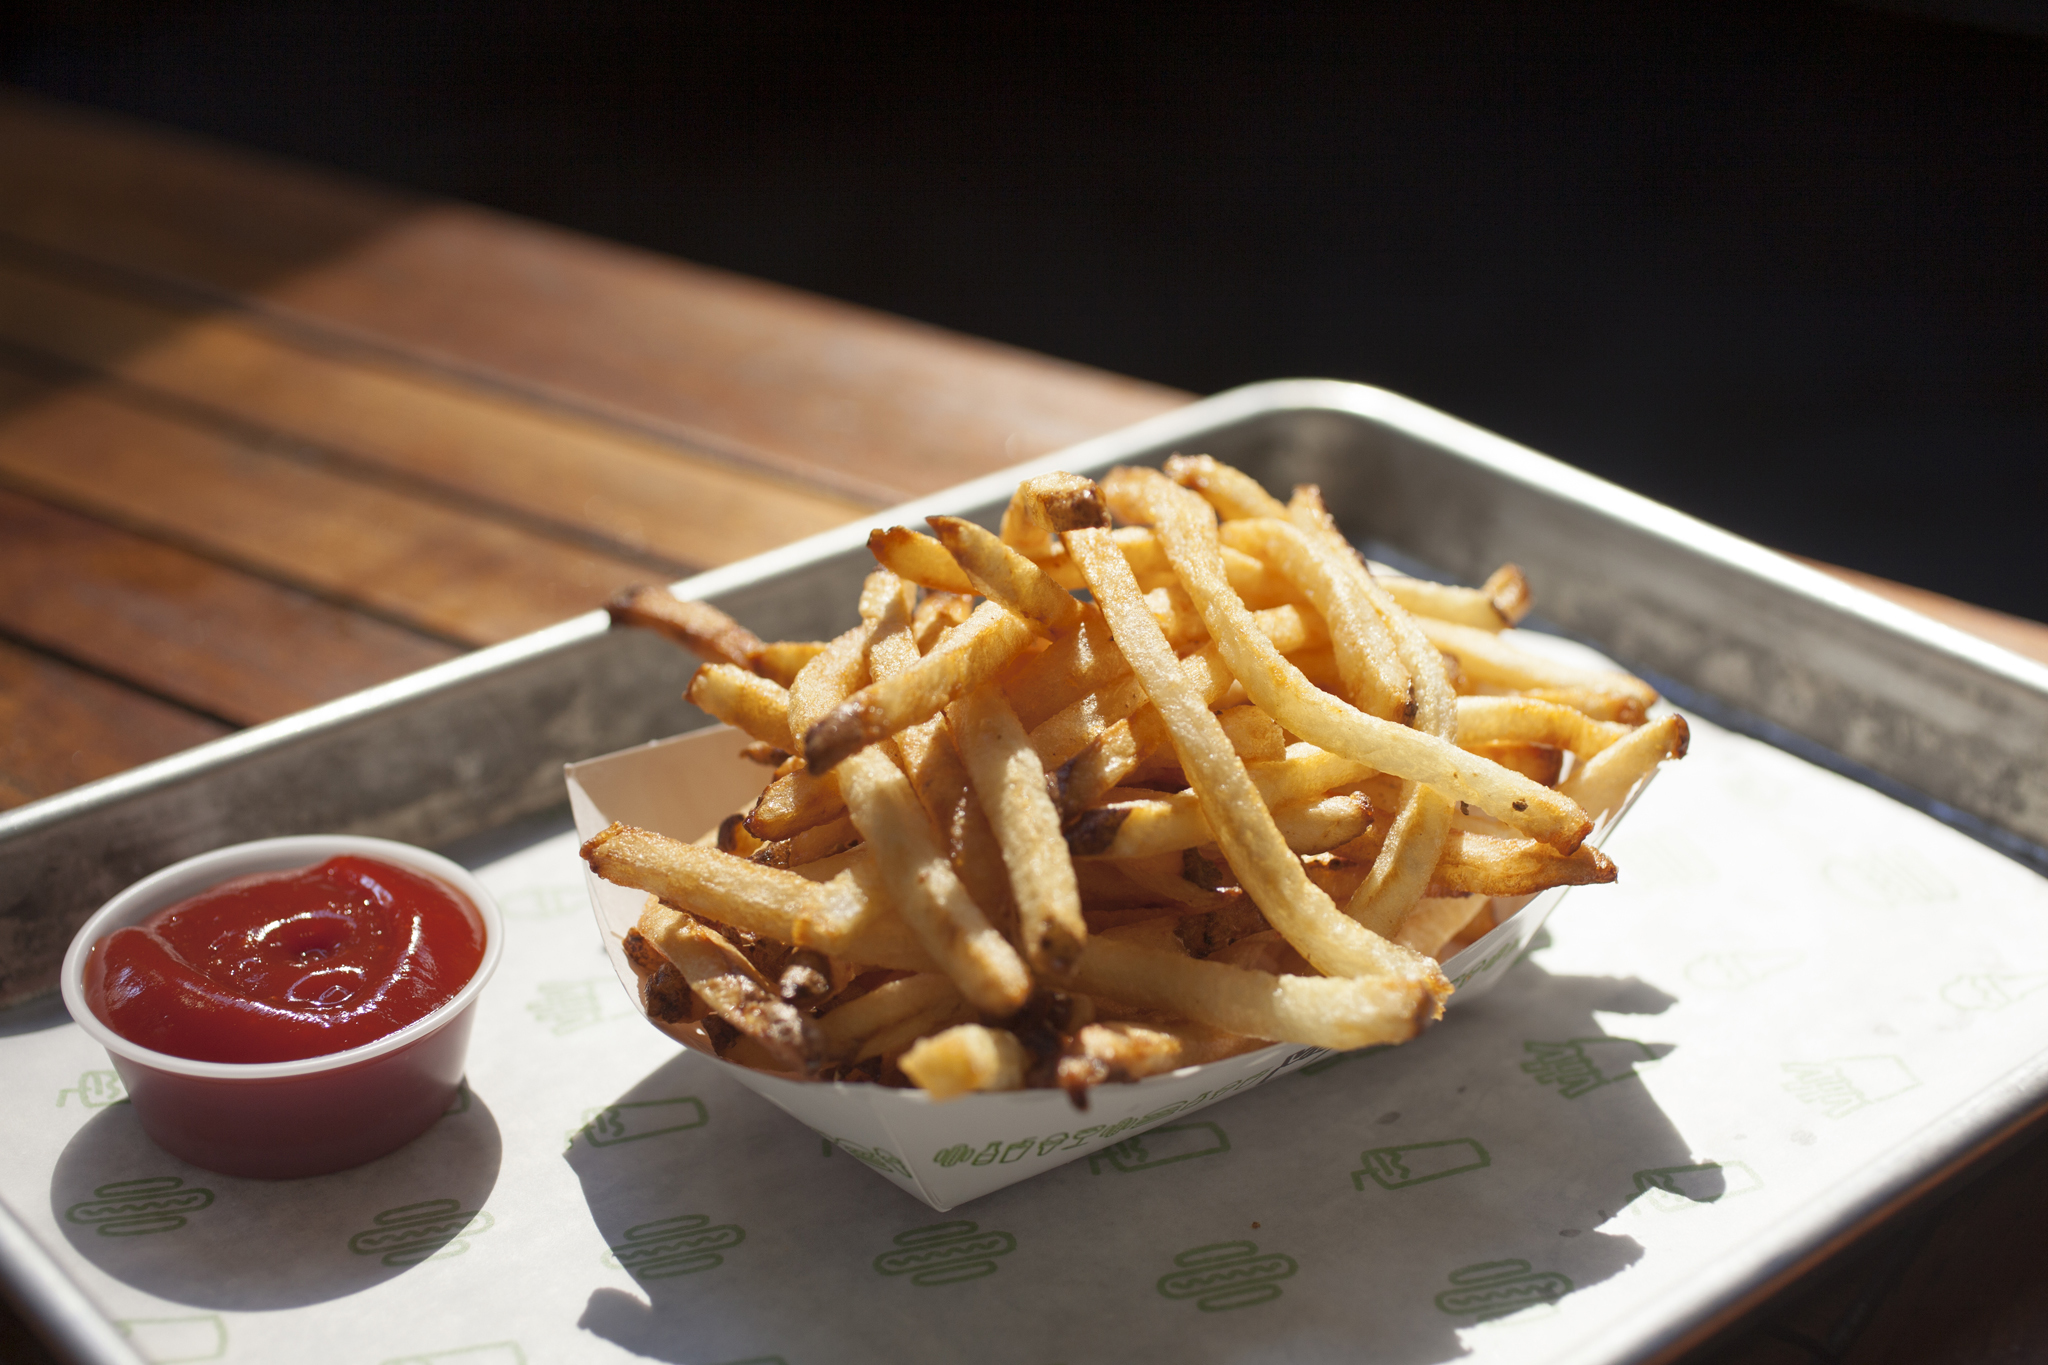 Best french fries of 2013 in New York City